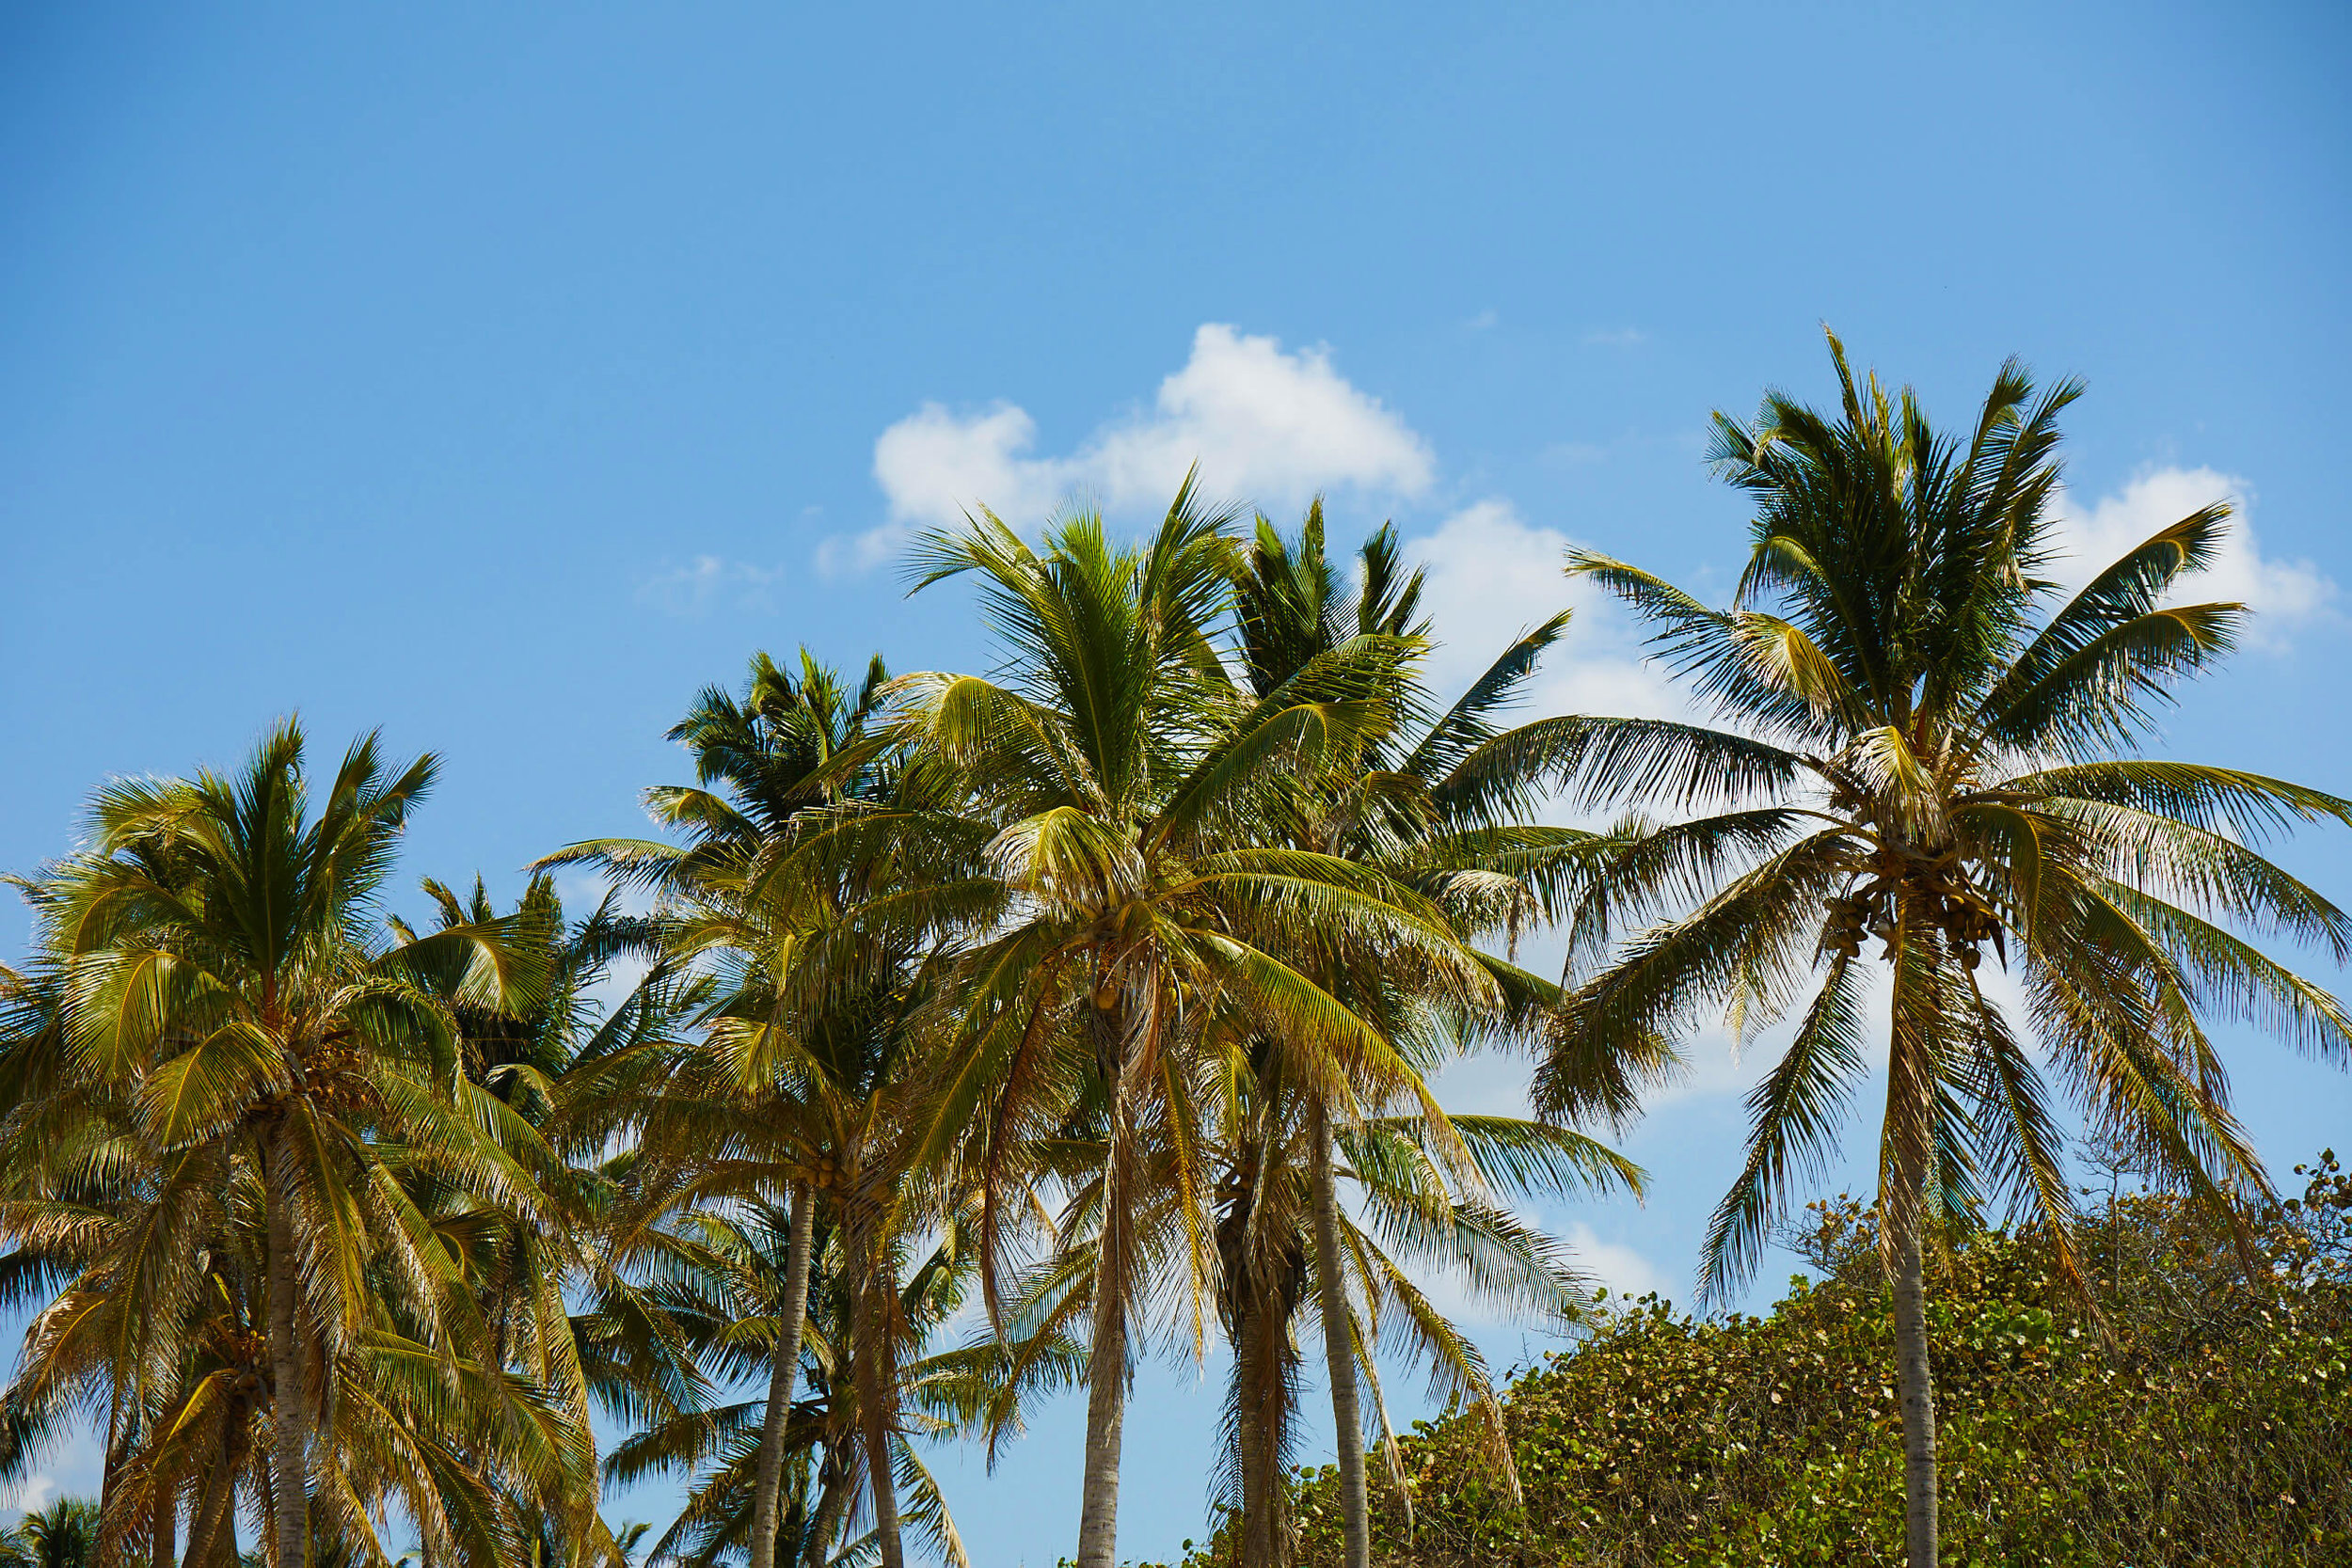 palm-trees-cuba-travel.jpg